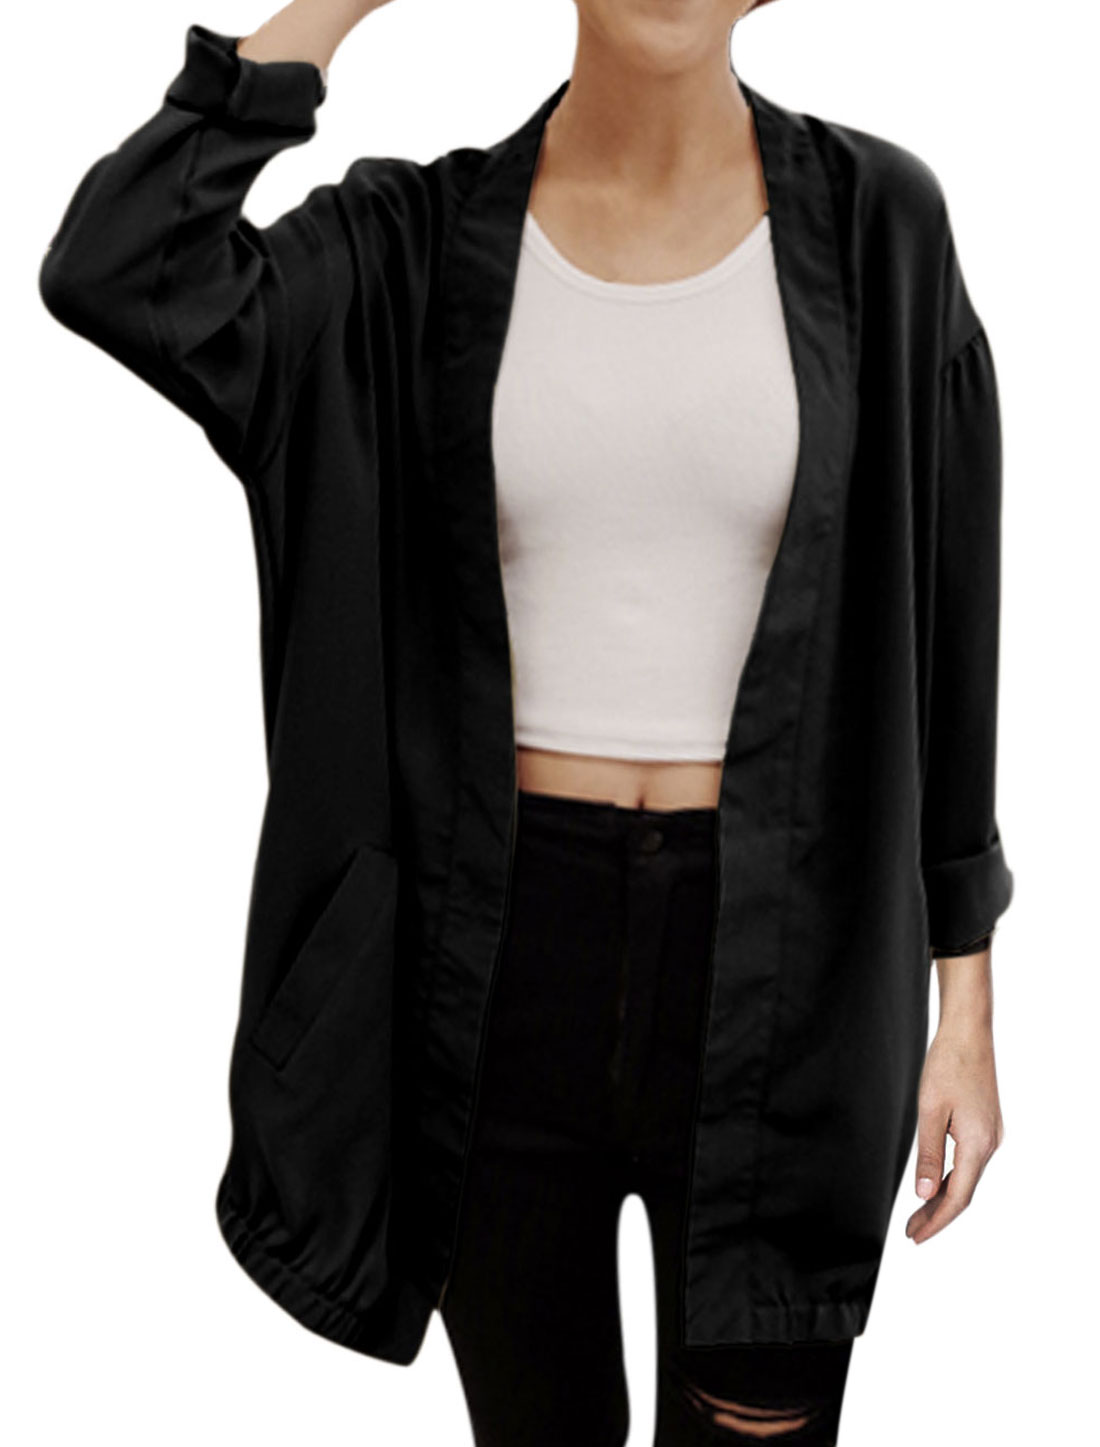 Lady Front Opening Double Slant Pockets Casual Chiffon Cardigan Black S